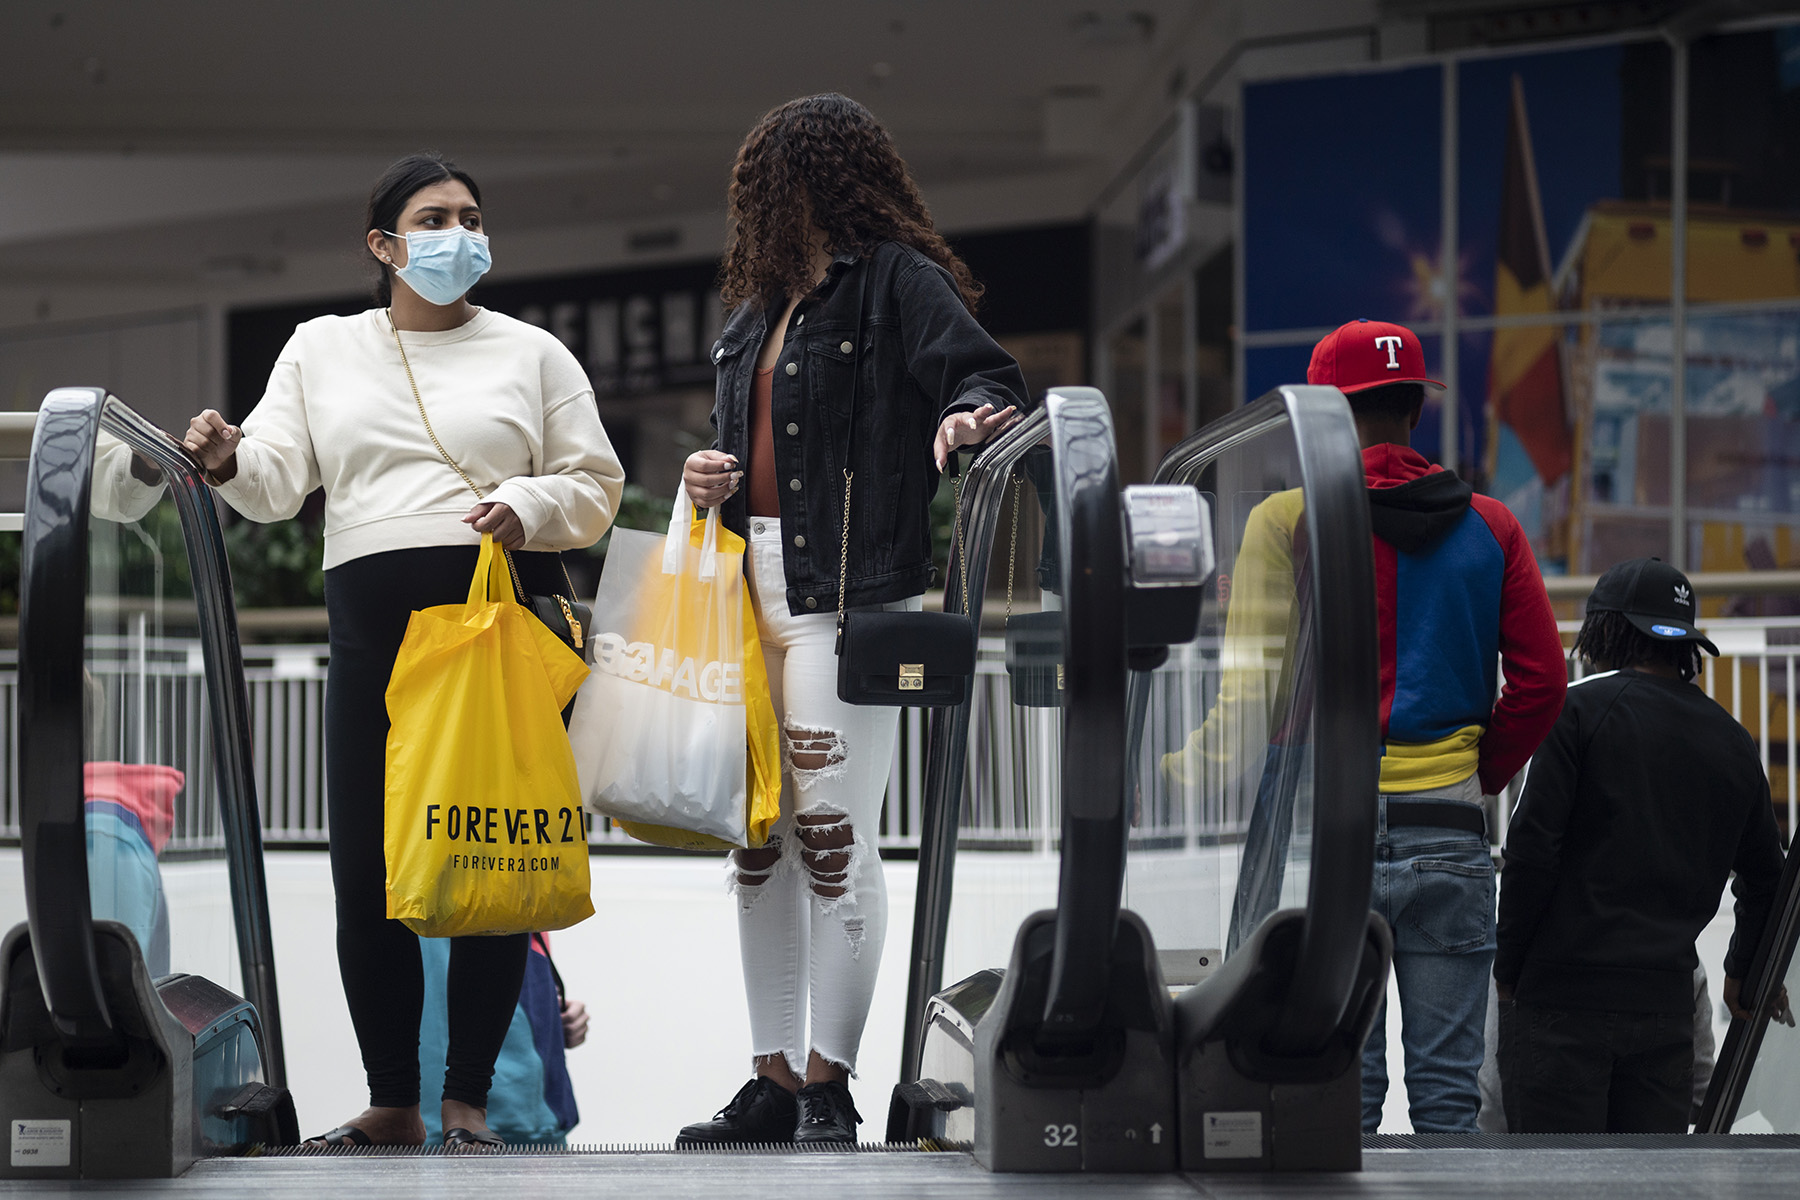 The National Retail Federation expects shoppers to return to shopping centers and malls in a big way for the rest of the year, driving up retail sales as much as 13.5%. (Getty Images)